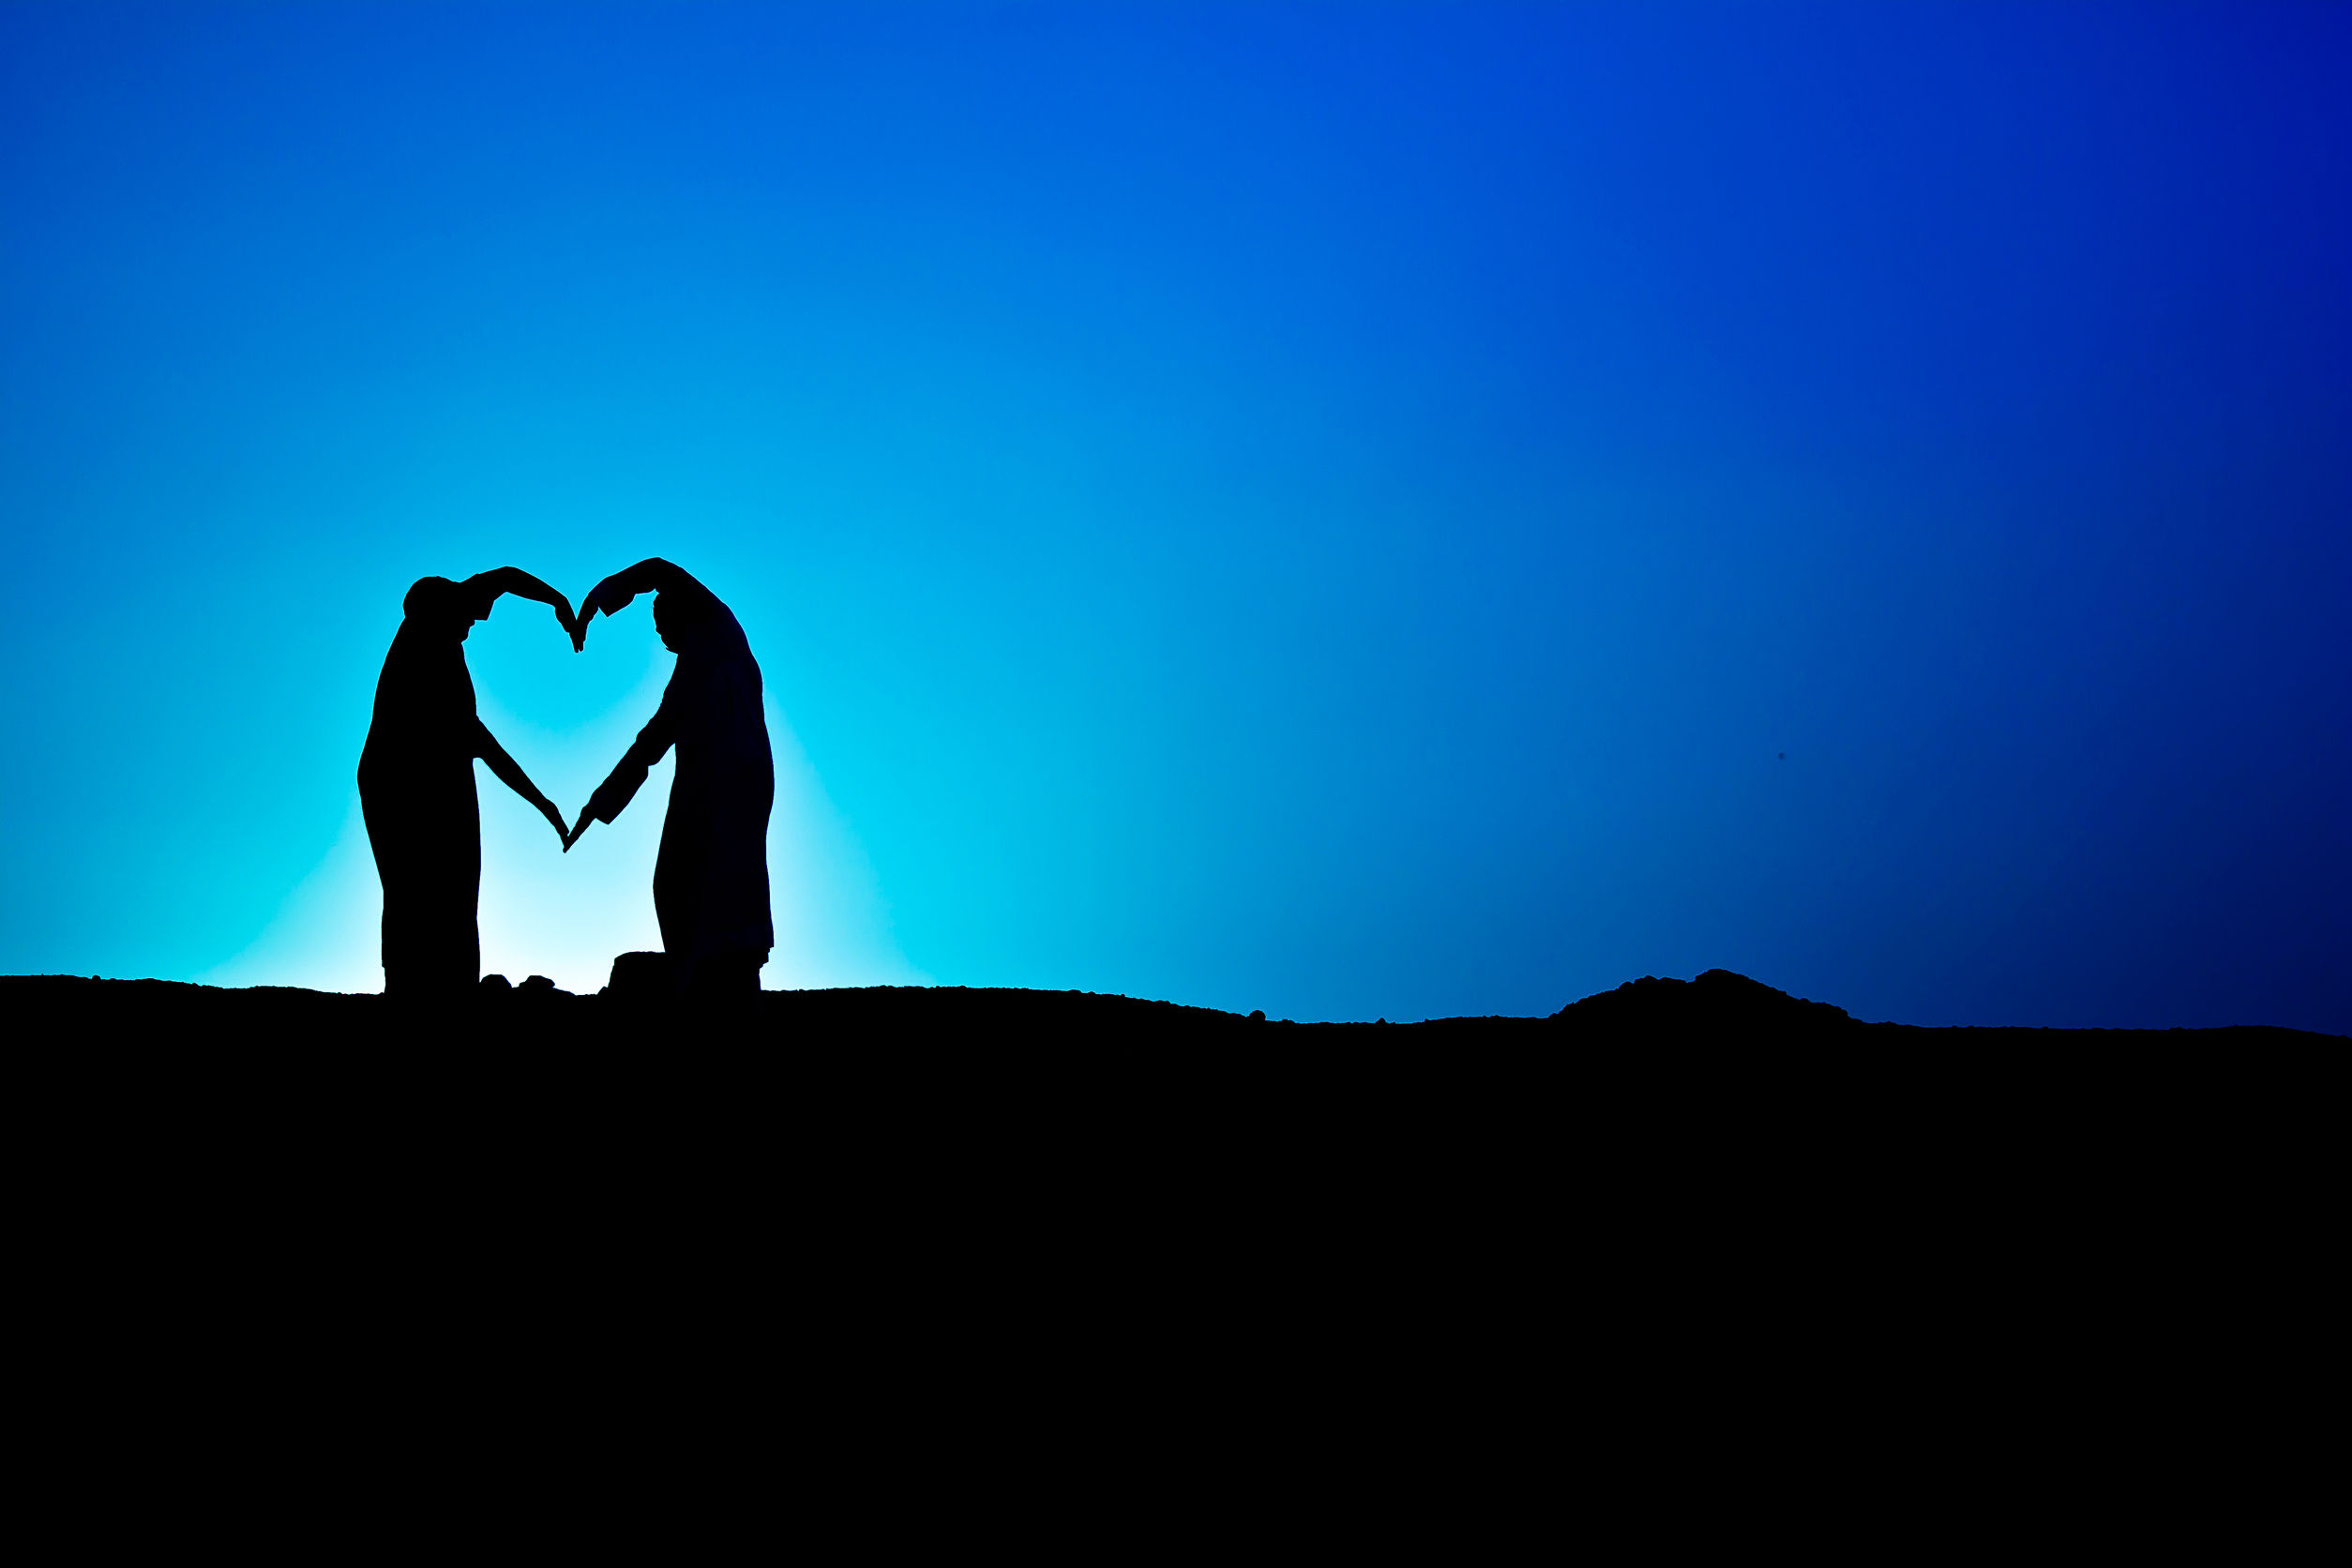 61861741 - conceptual heart shape, symbol of human. woman and man hand silhouette over sky at sunset background, metaphor to love, valentine day, romantic, couple, wedding, romance, summer or sunrise